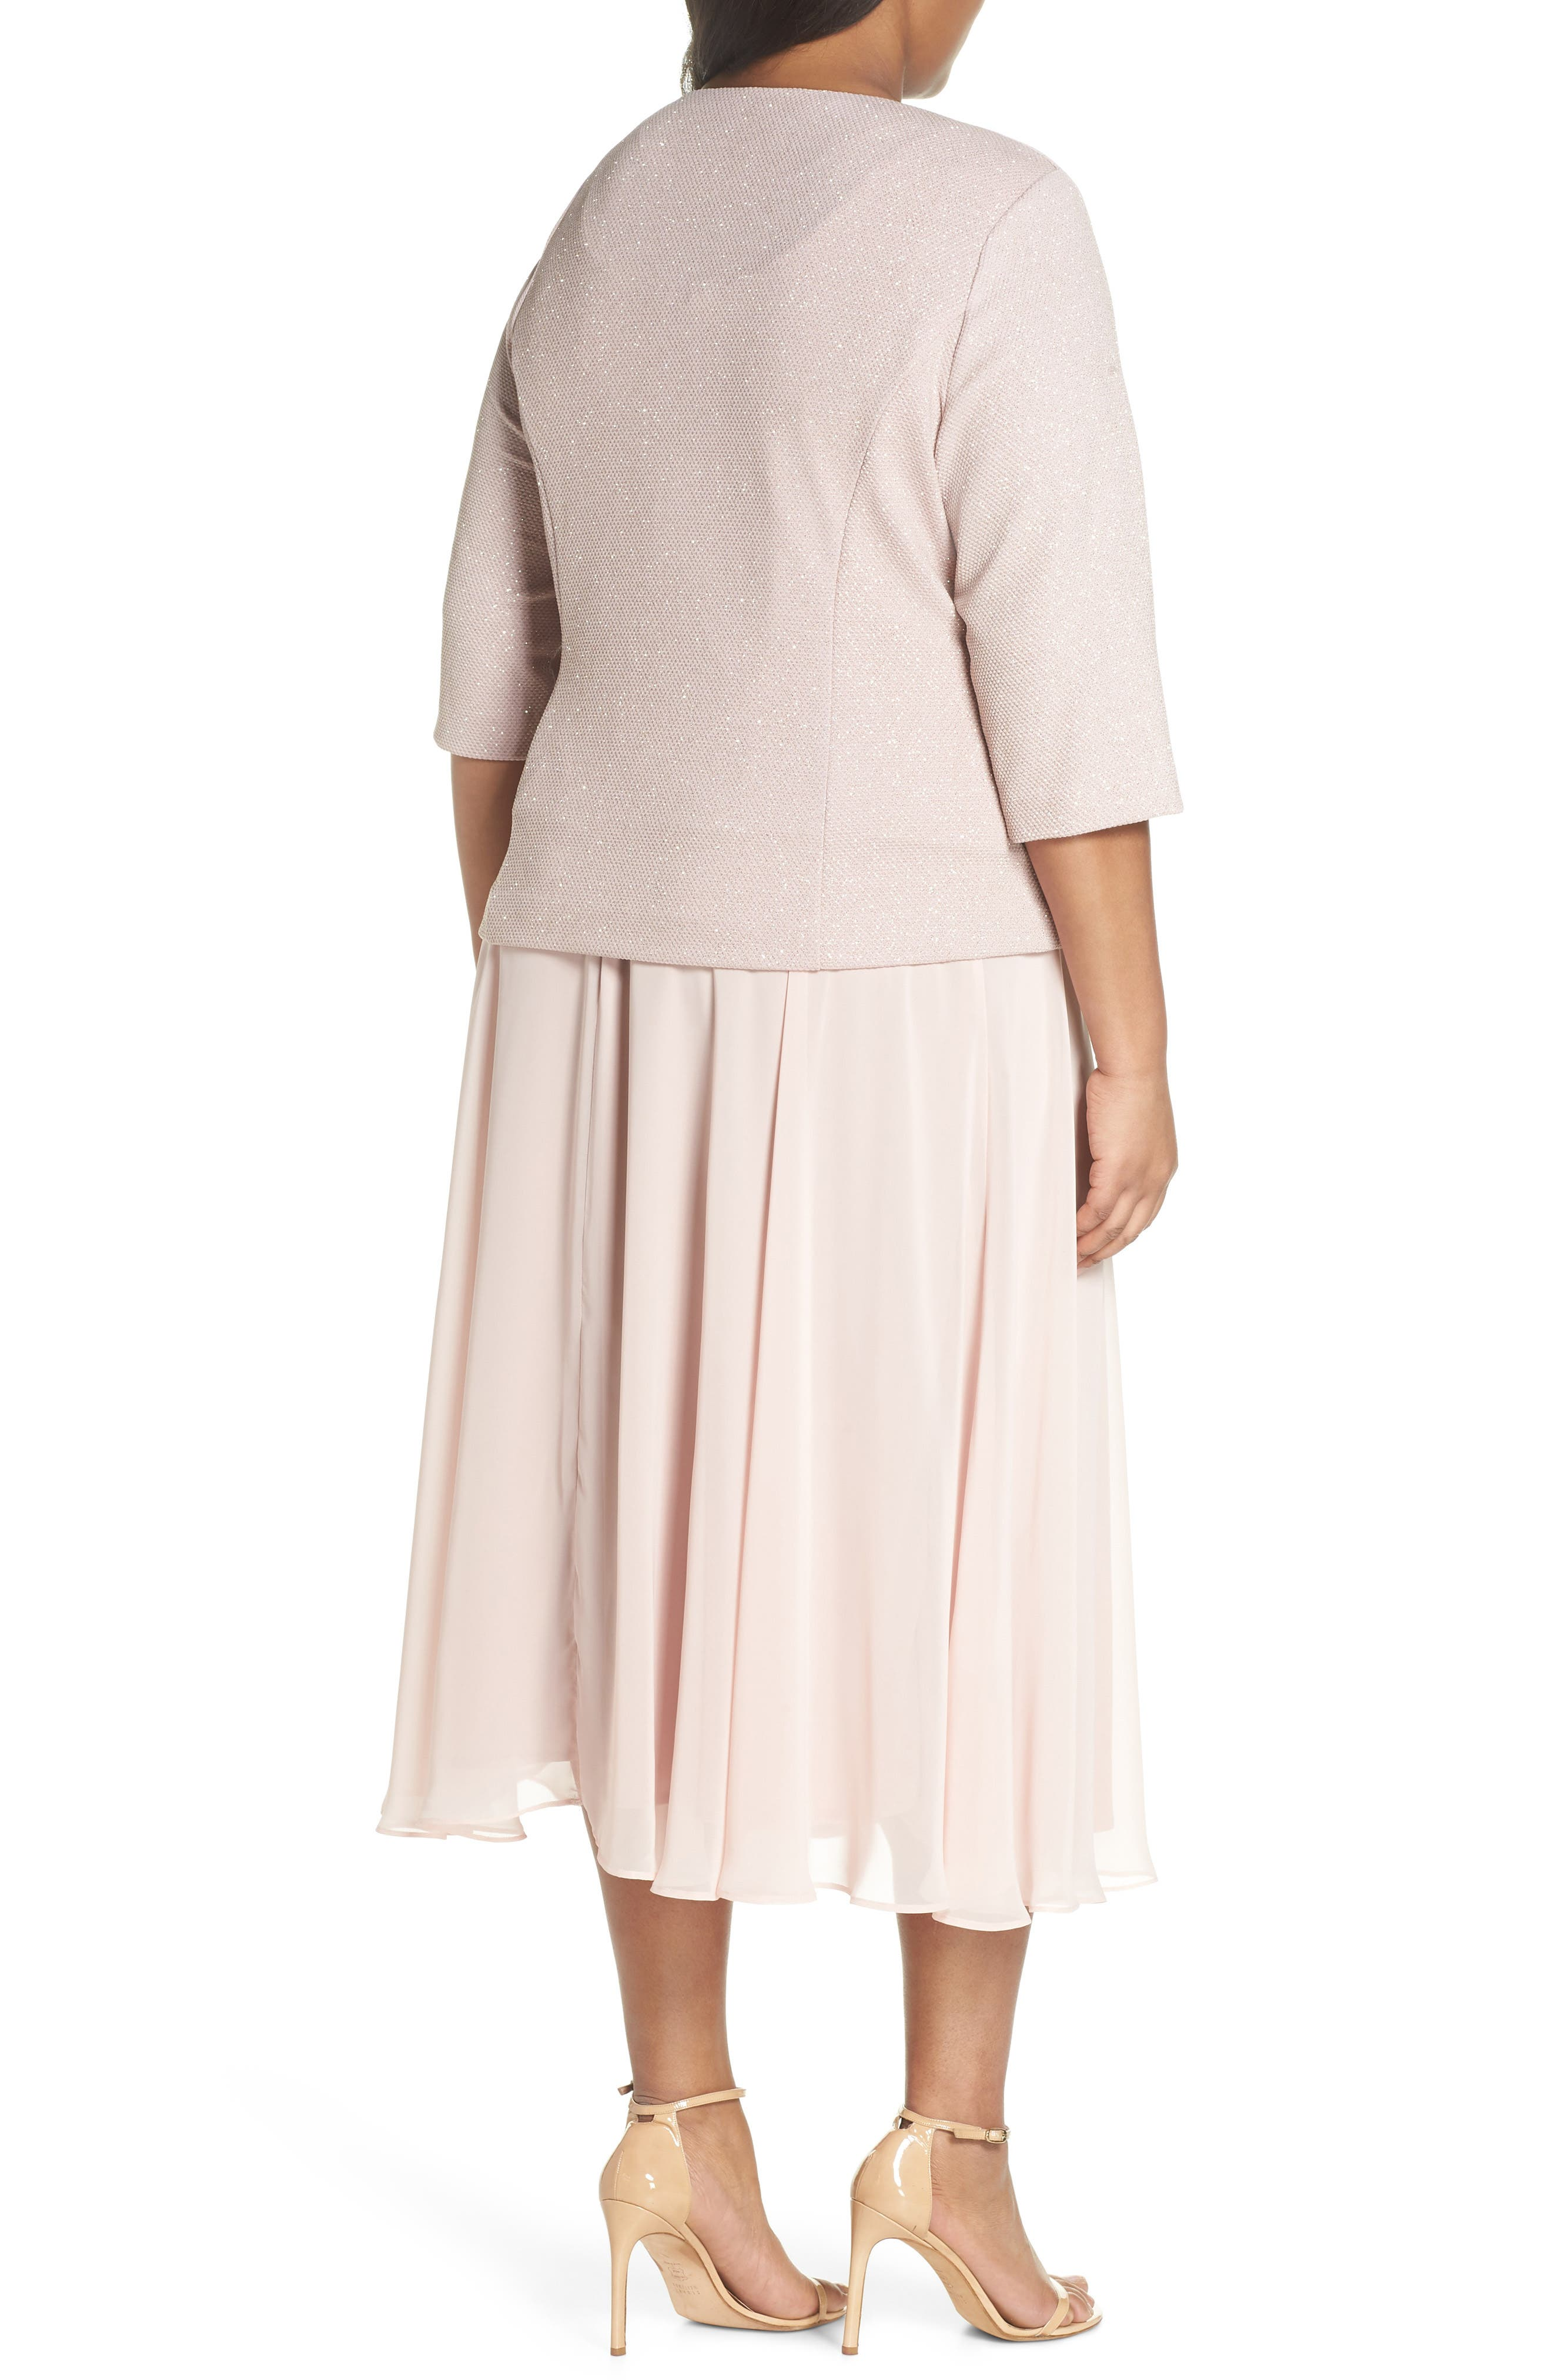 Glitter Tea Length A-Line Dress with Jacket,                             Alternate thumbnail 2, color,                             Pale Blush